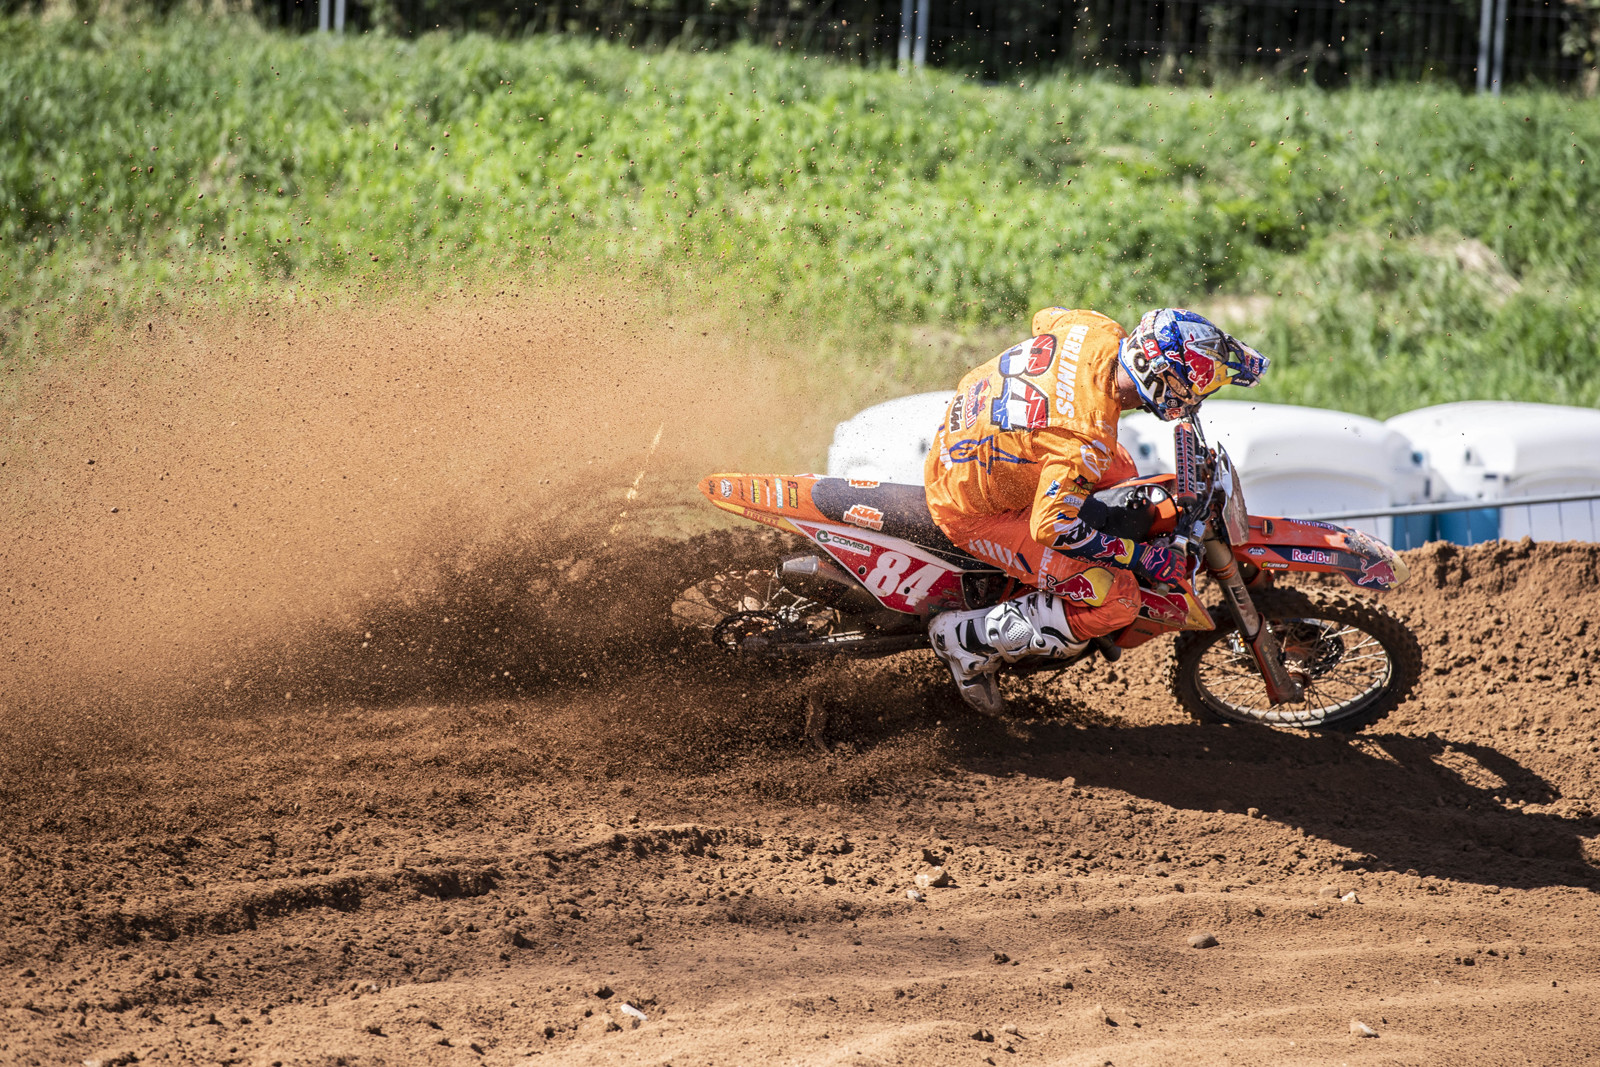 Jeffrey Herlings got the overall, but not the way he wanted. The Red Bull KTM rider went 4-1 on the weekend.